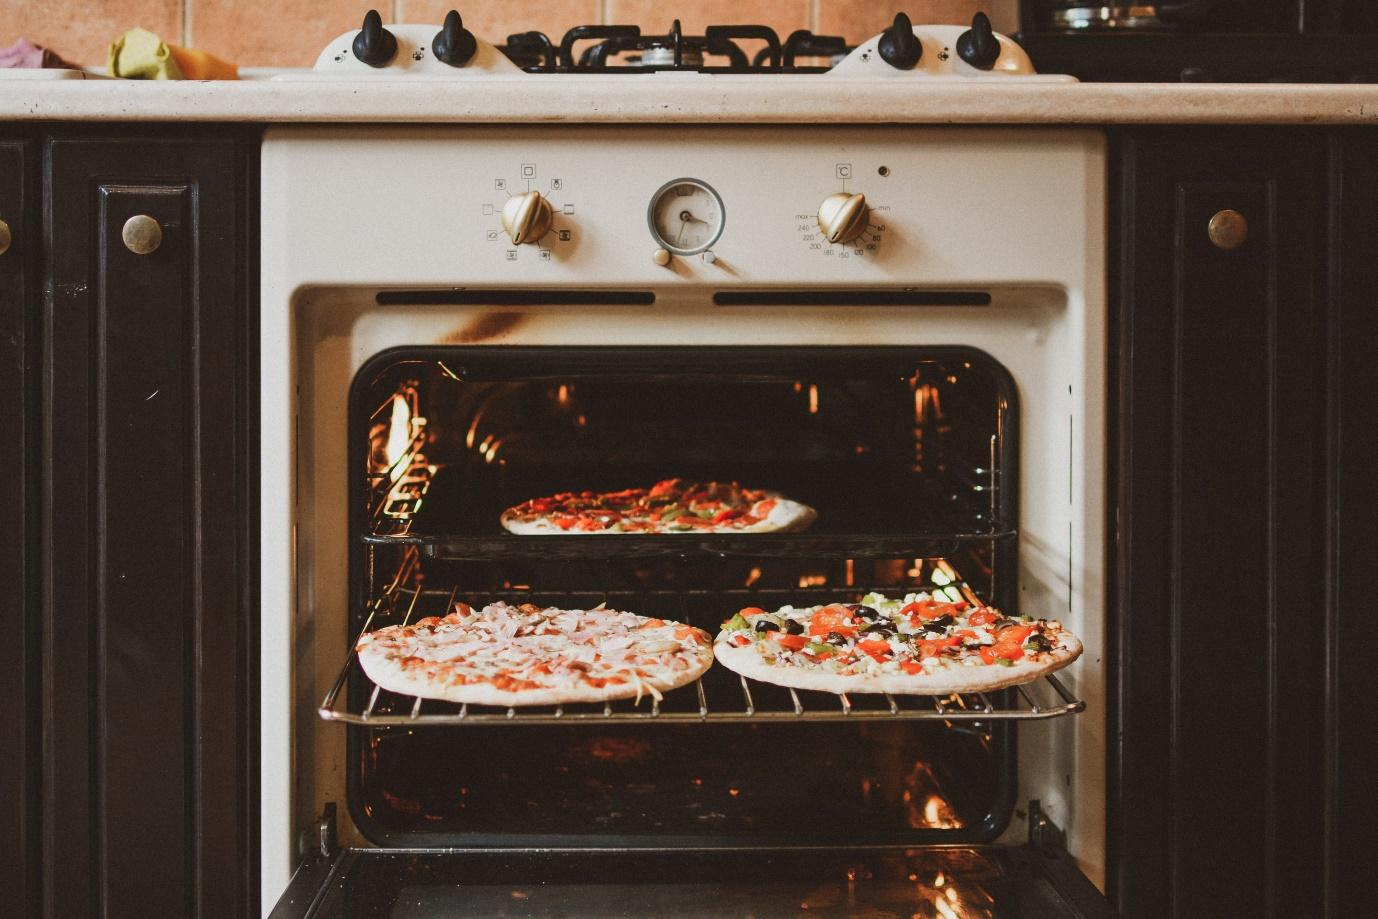 A pizza sitting on top of a stove top oven  Description automatically generated